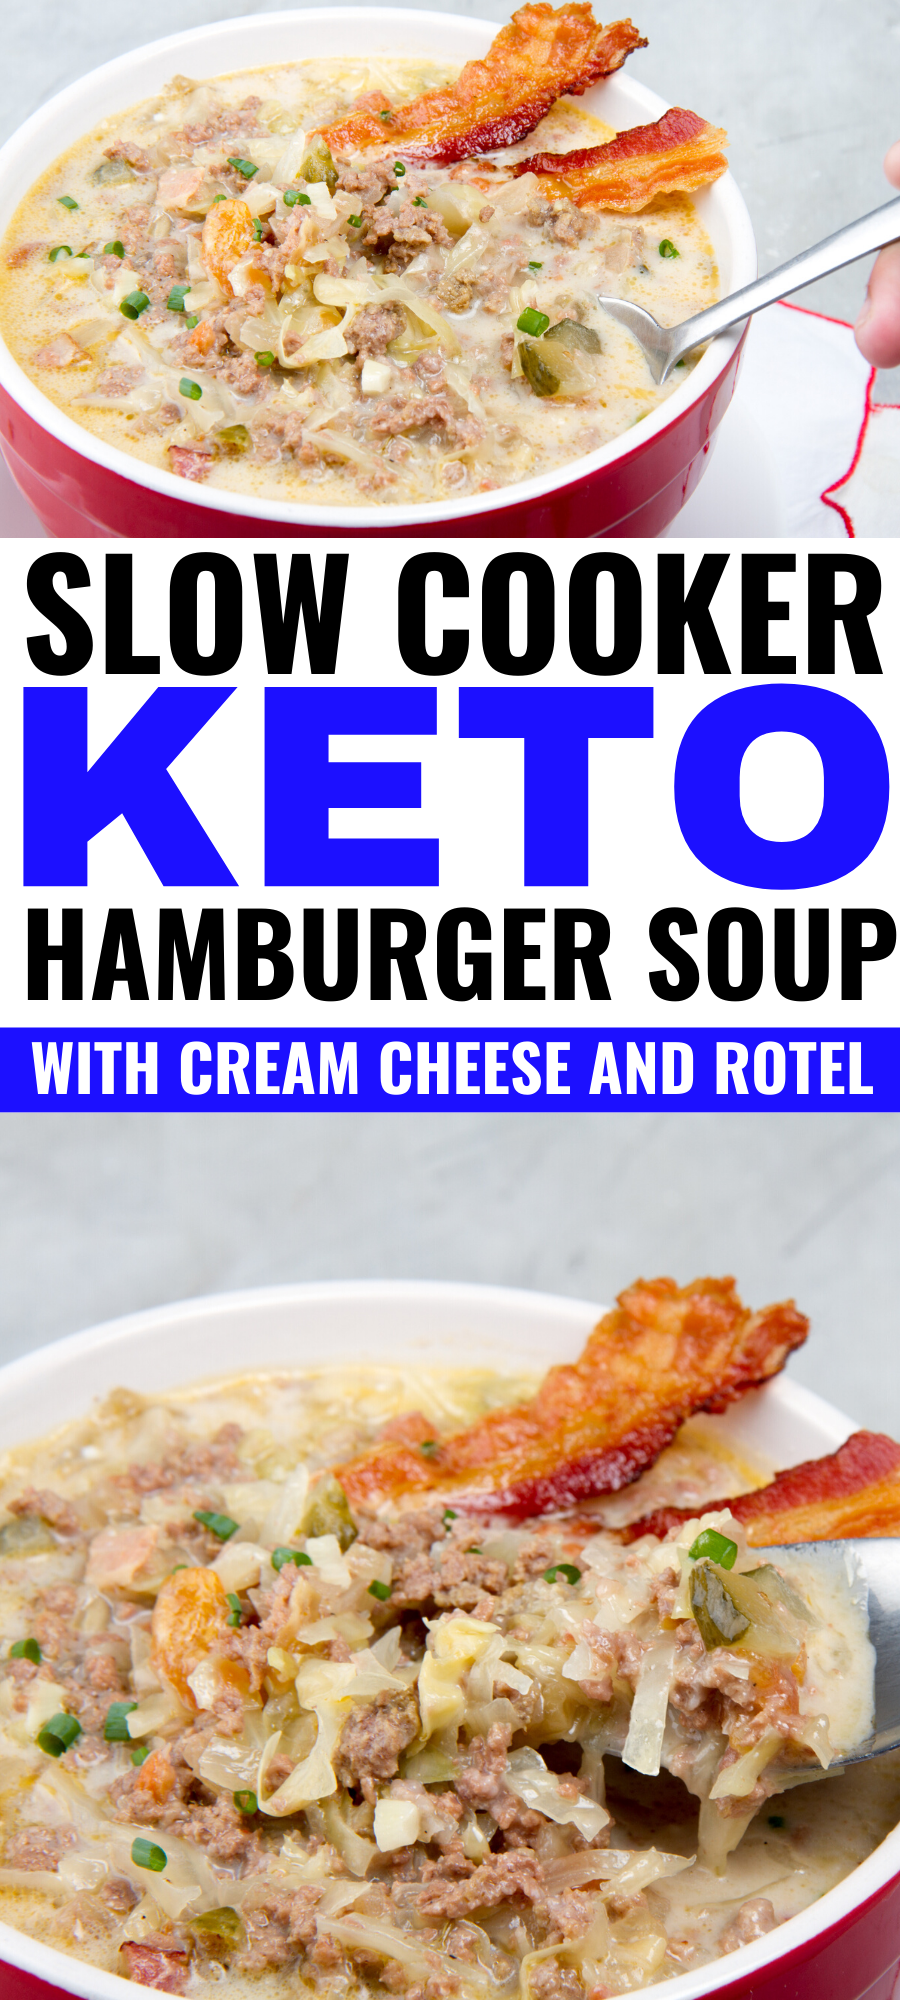 Slow Cooker Keto Hamburger Soup With Cream Cheese And Rotel Recipe Hamburger Soup Soup With Ground Beef Ground Beef Crockpot Recipes